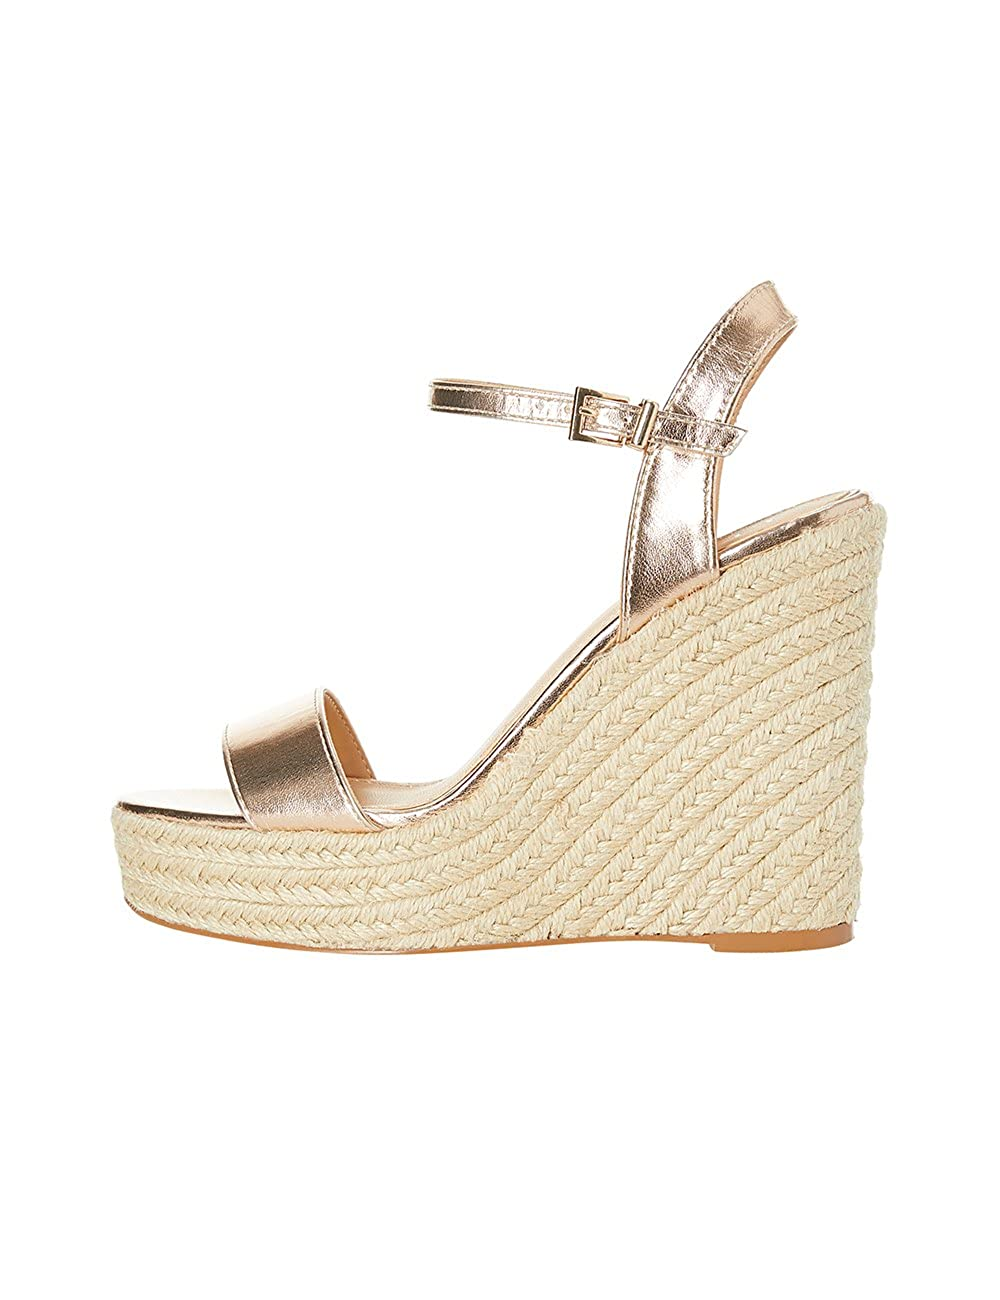 8faa545e785 Lipsy Women's Espadrille Gold Size: 4 UK: Amazon.co.uk: Shoes & Bags